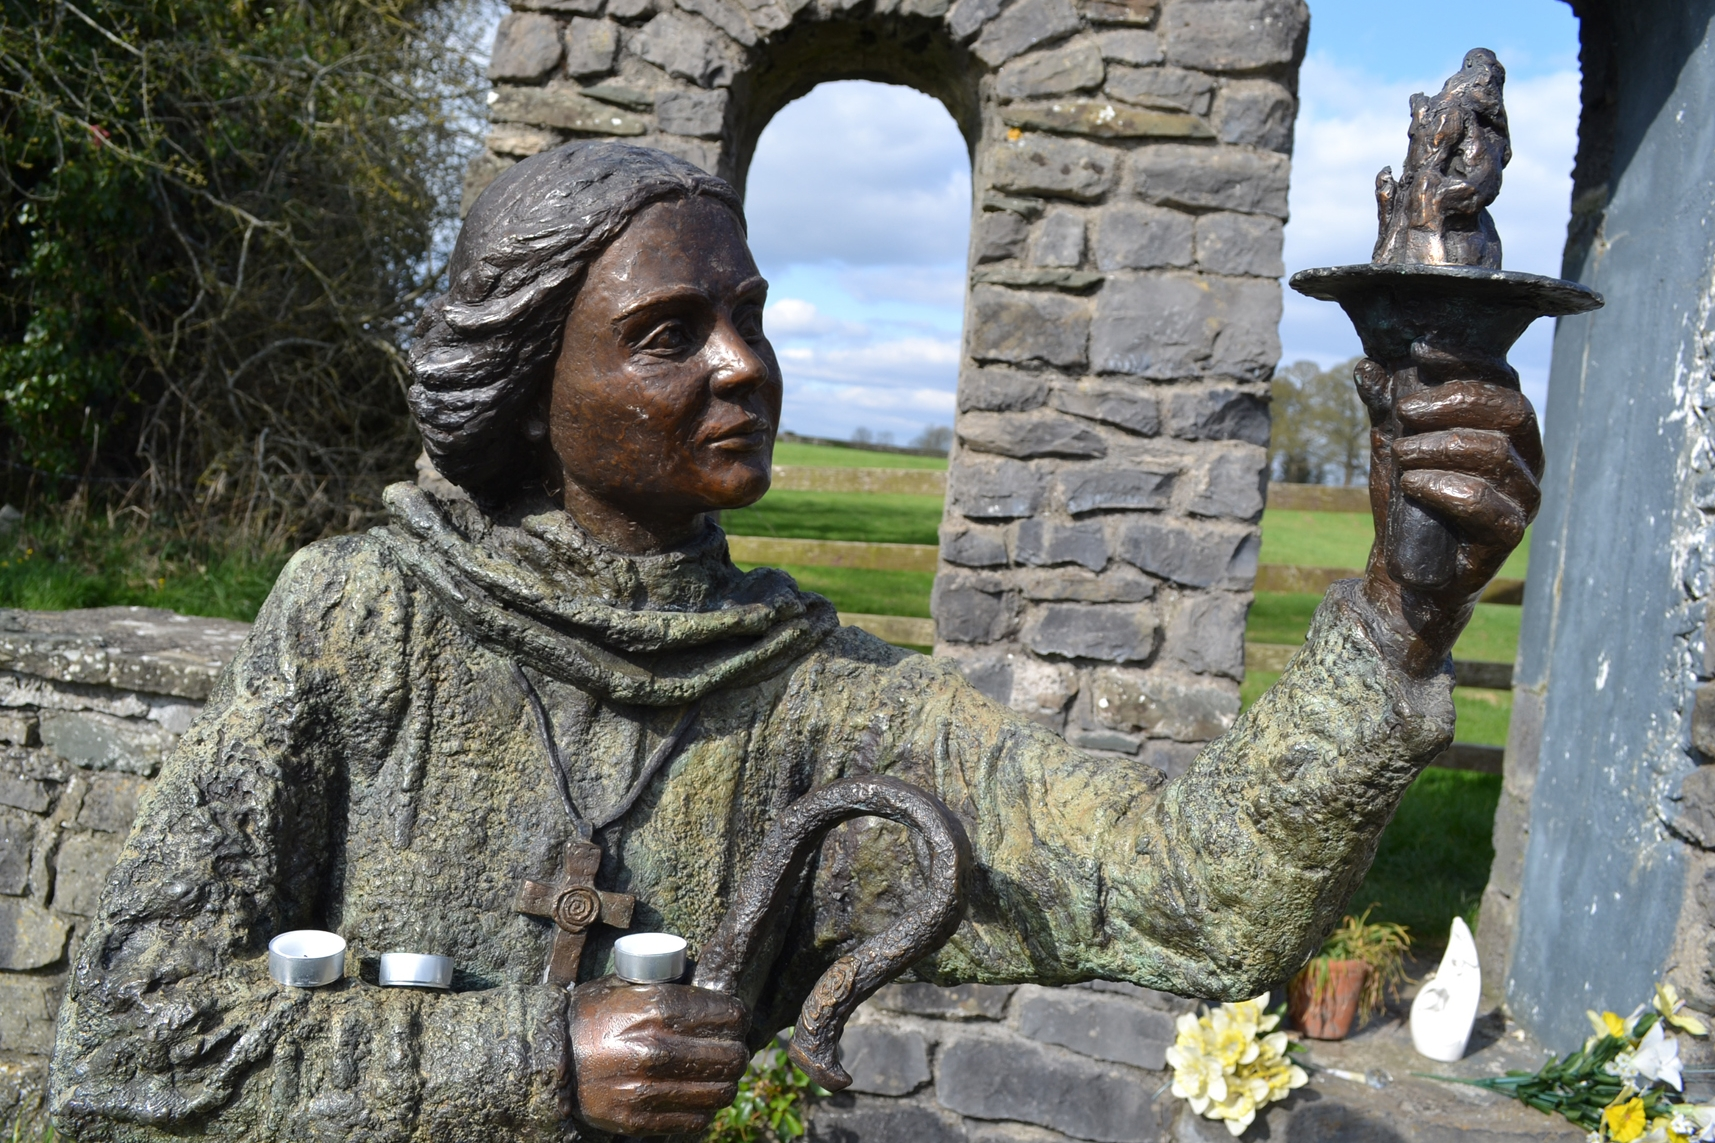 The statue of St Brigid (also known as St Bride) at St Brigid's Well, Kildare, Ireland. She is depicted holding a flame to represent the eternal flame that burned at the heart of the mixed gender abbey she built in the fifth century.